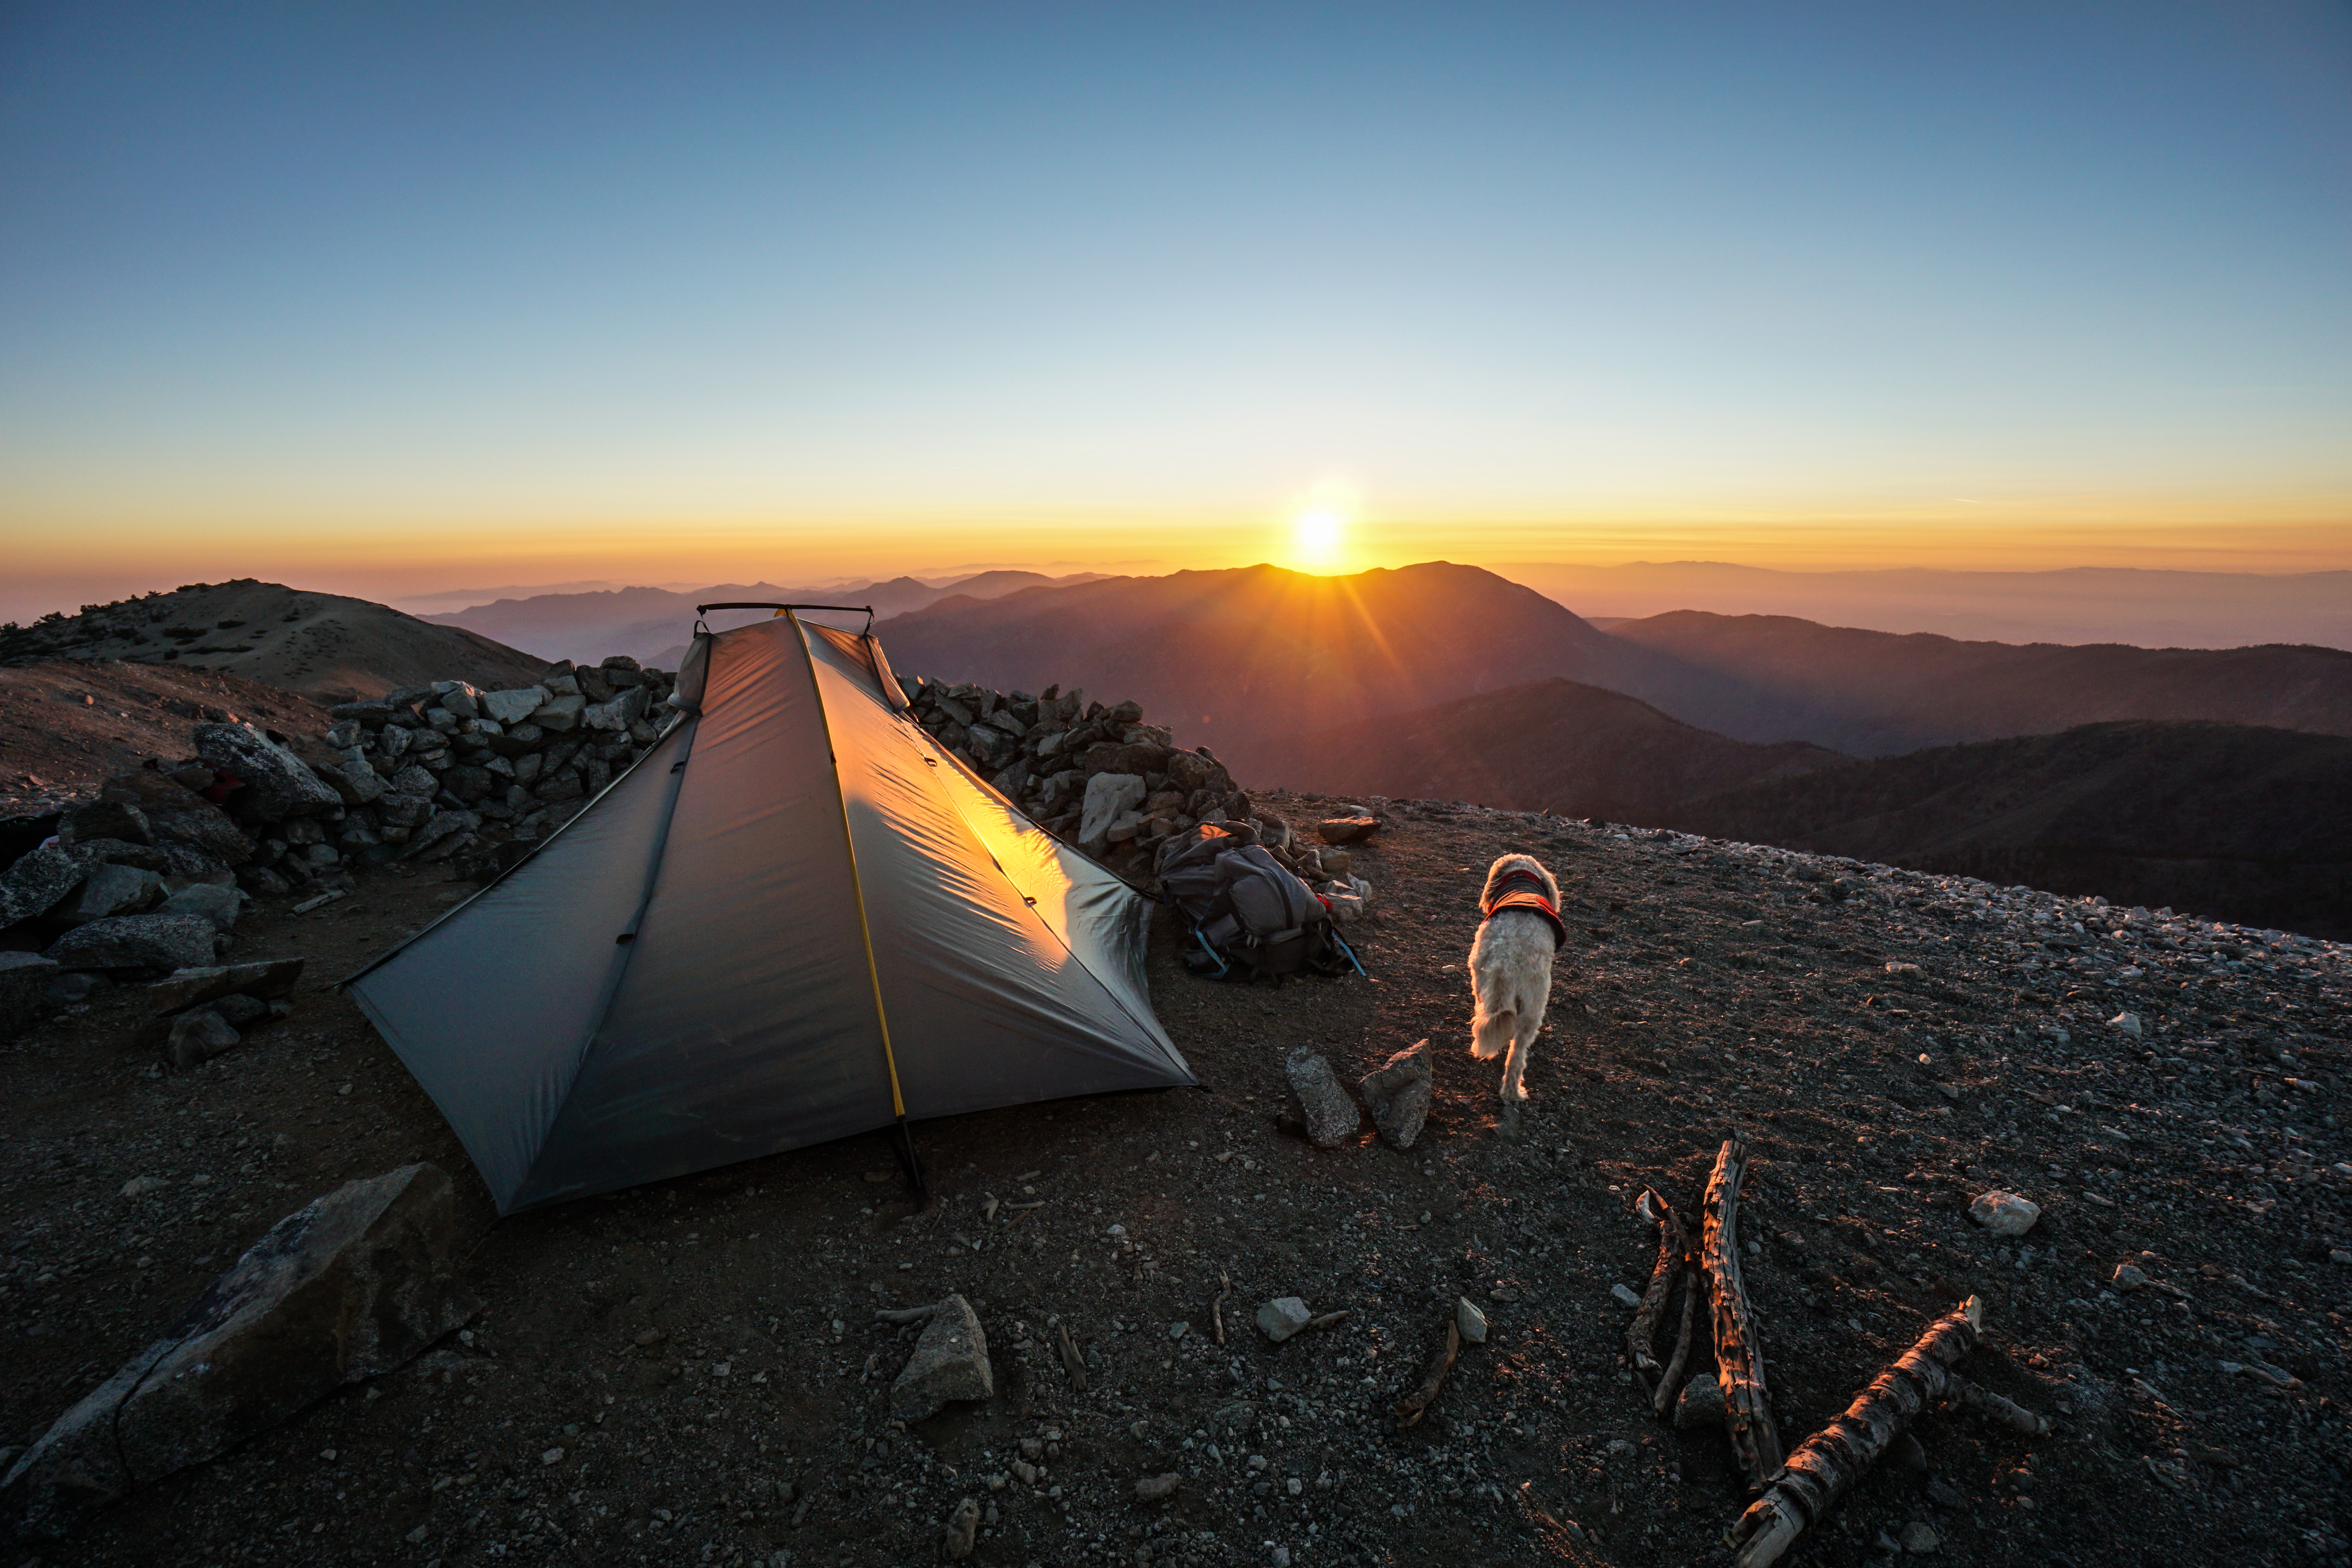 Mt. Baldy Summit Camping